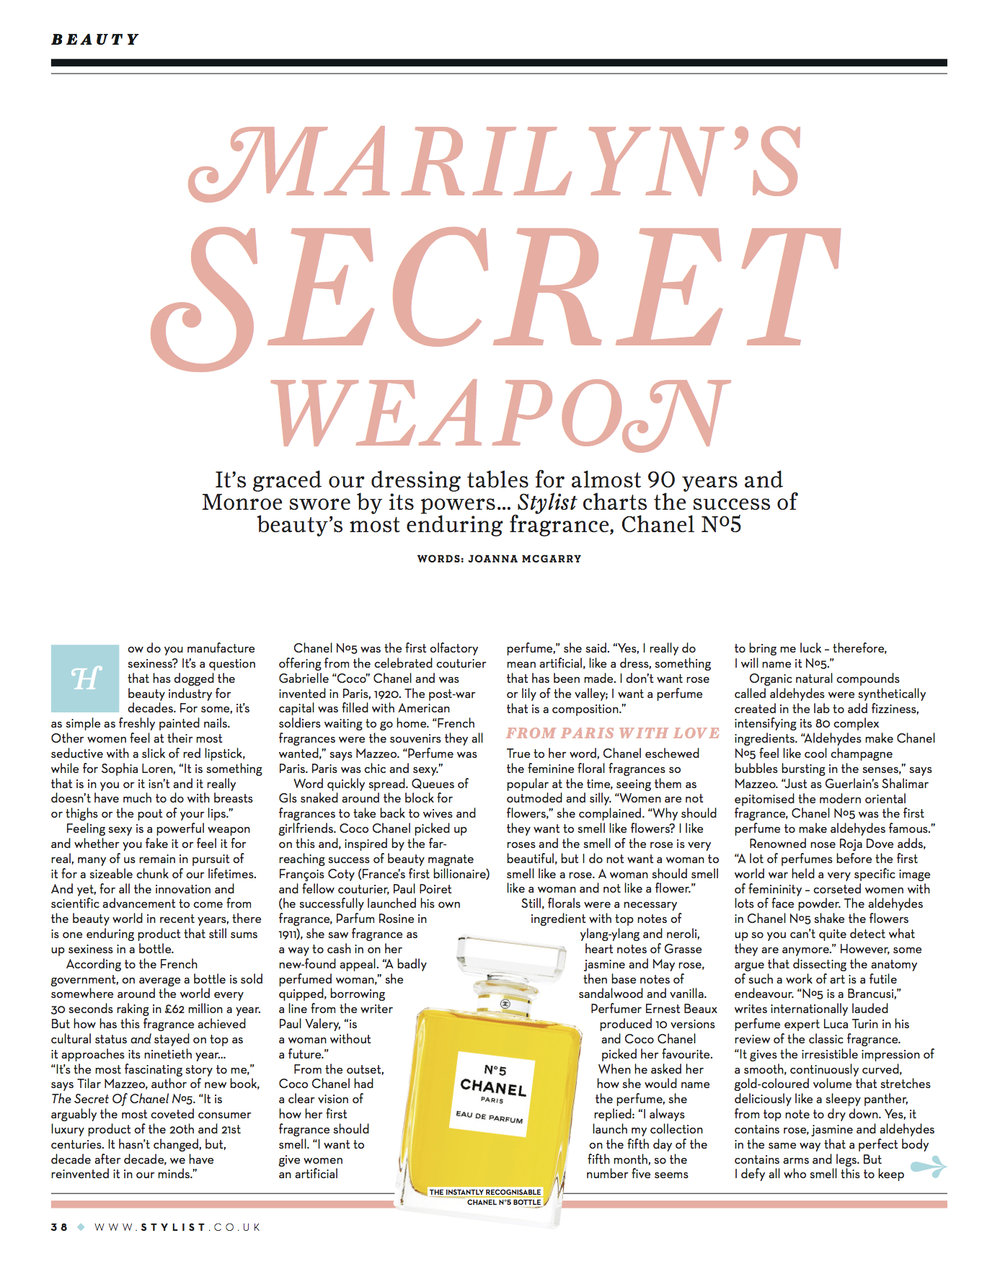 56 MARILYNS SECRET WEAPON - Chanel No.5.jpg